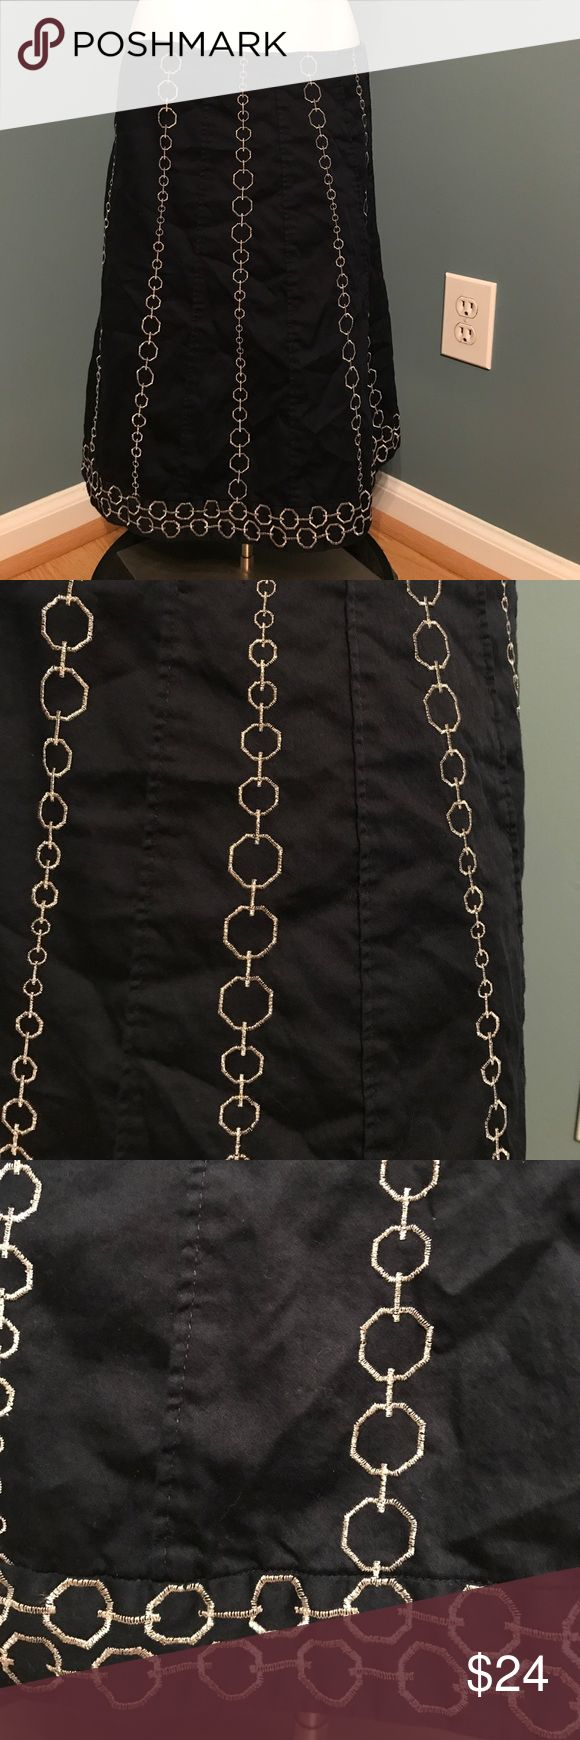 Ann Taylor navy blue skirt w/ embroidered silver Fully lined. Zipper closure with eyehook (one side of eye hook is missing) embroidered silver loops in a vertical pattern to create a slimming effect. Bottom is short has wrap around loops. Size 4 Ann Taylor Skirts A-Line or Full